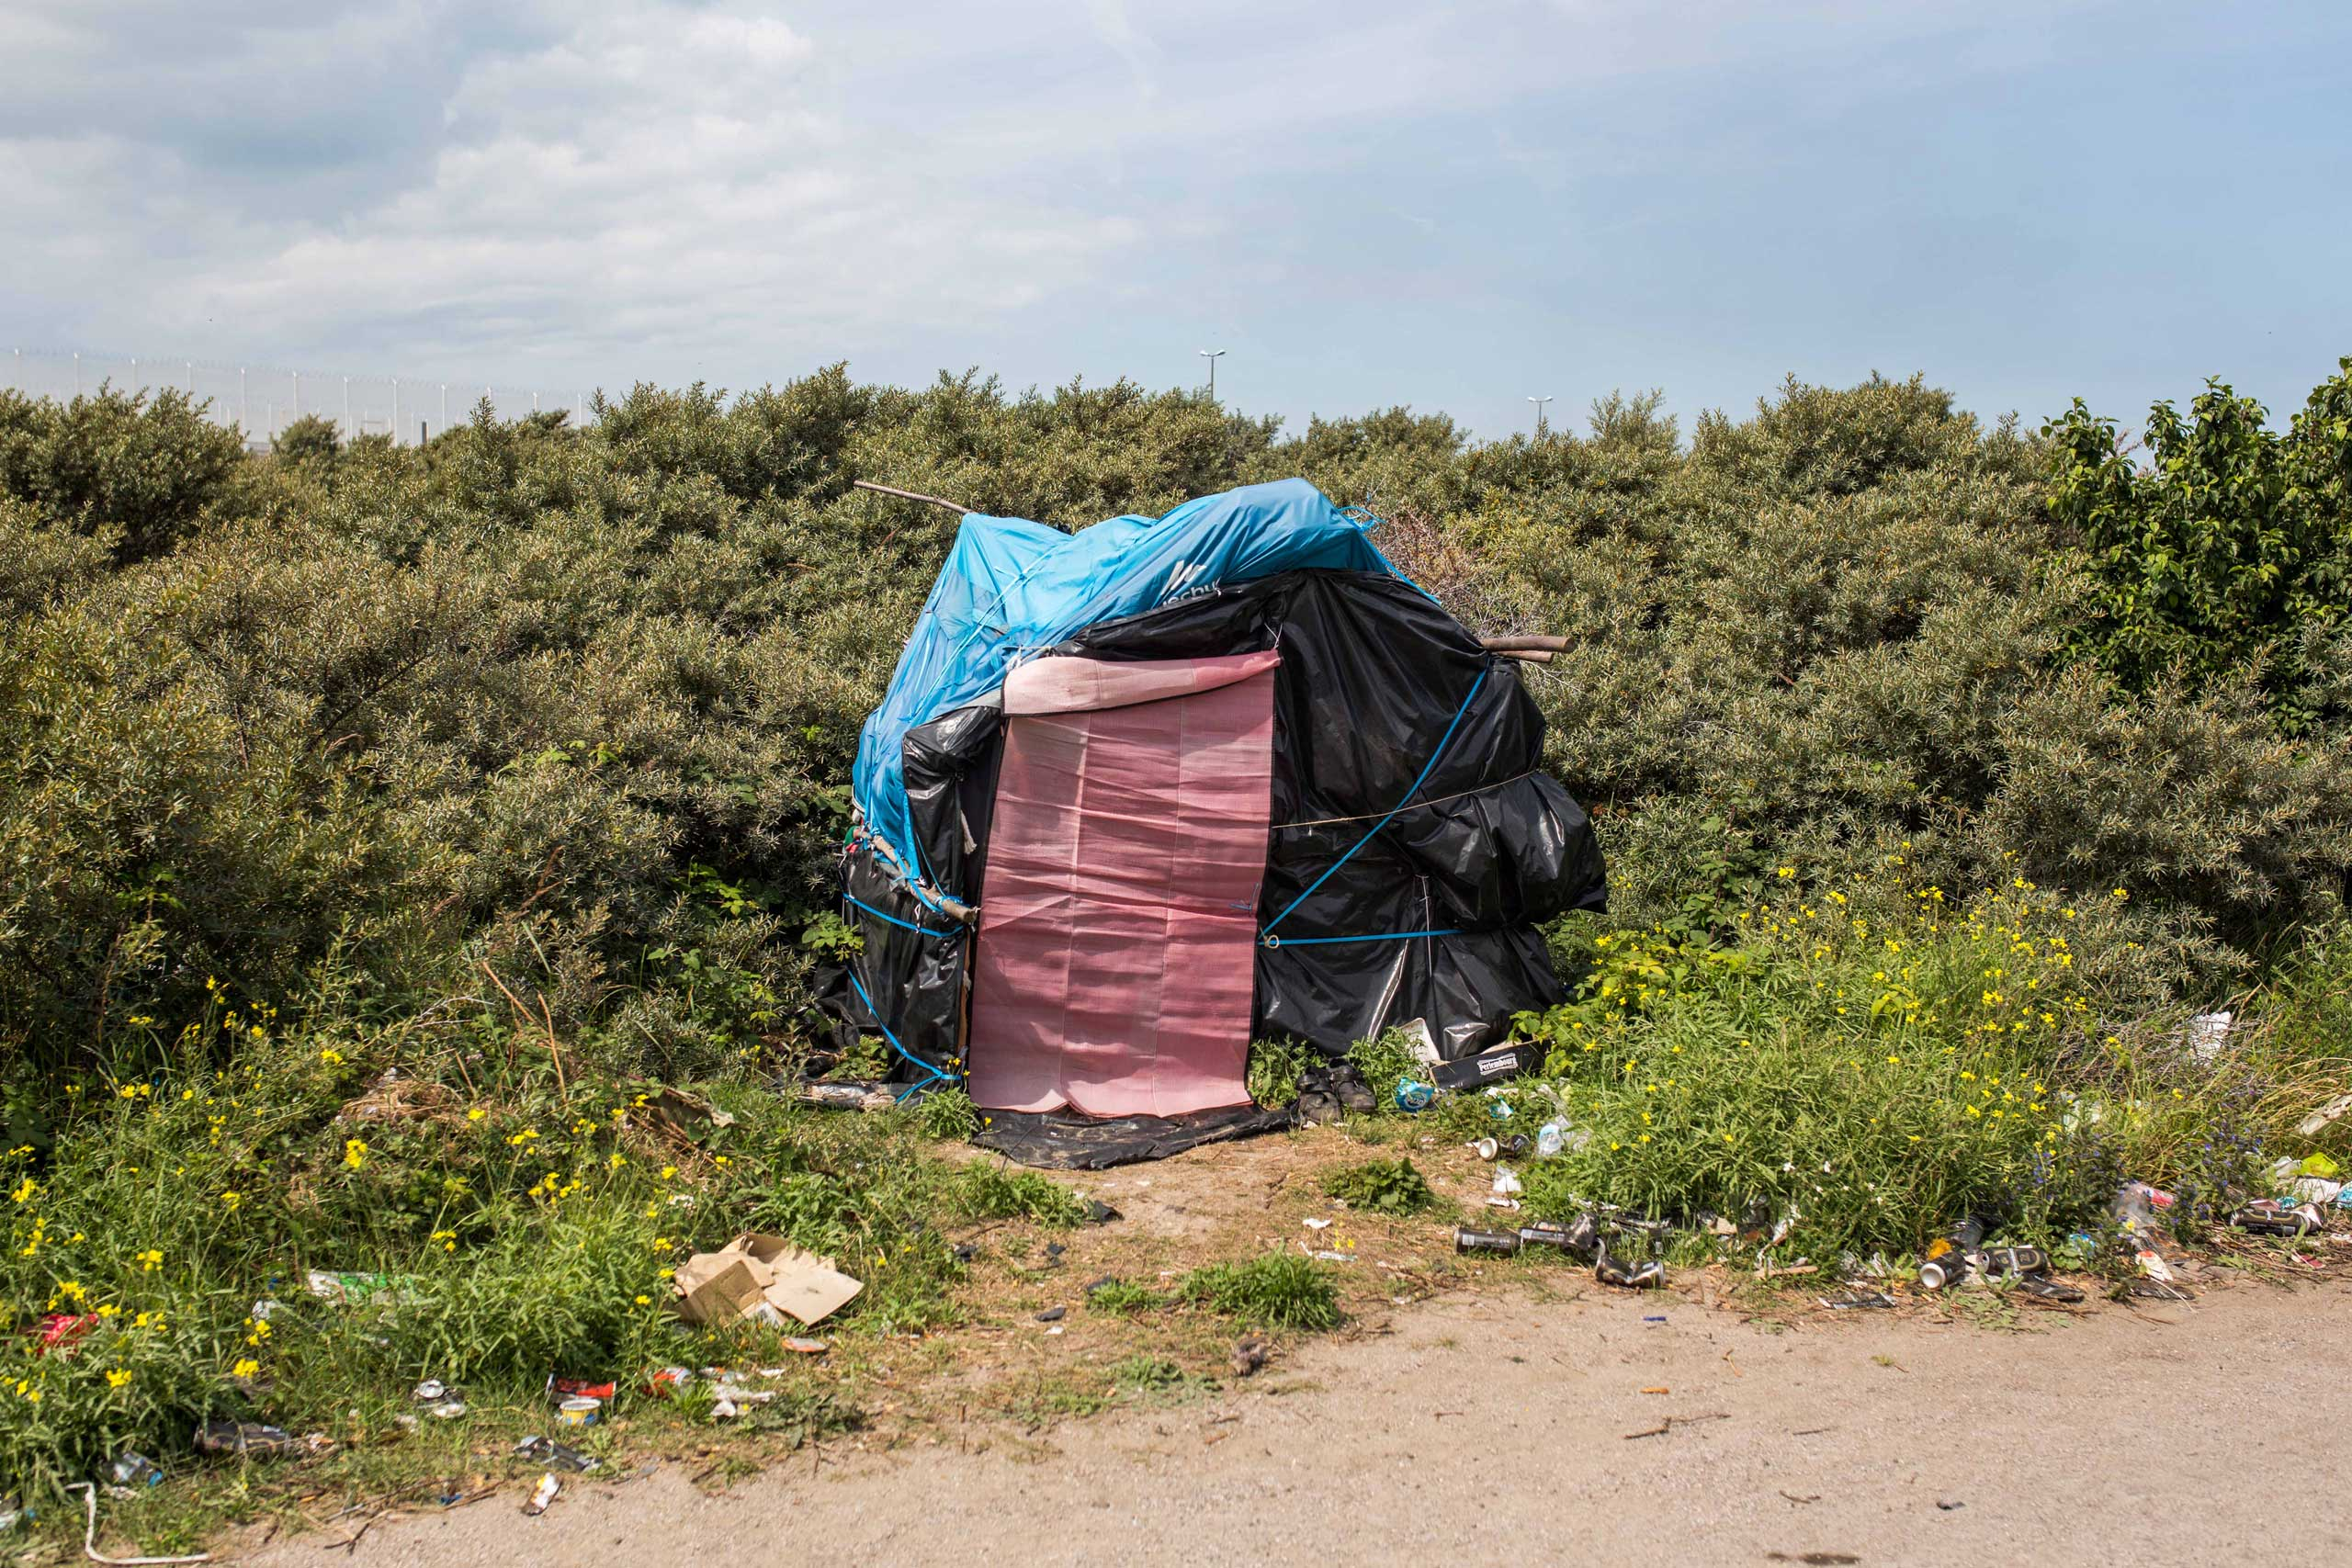 A tent at a make shift camp near the port of Calais in Calais, France, on July 31, 2015.